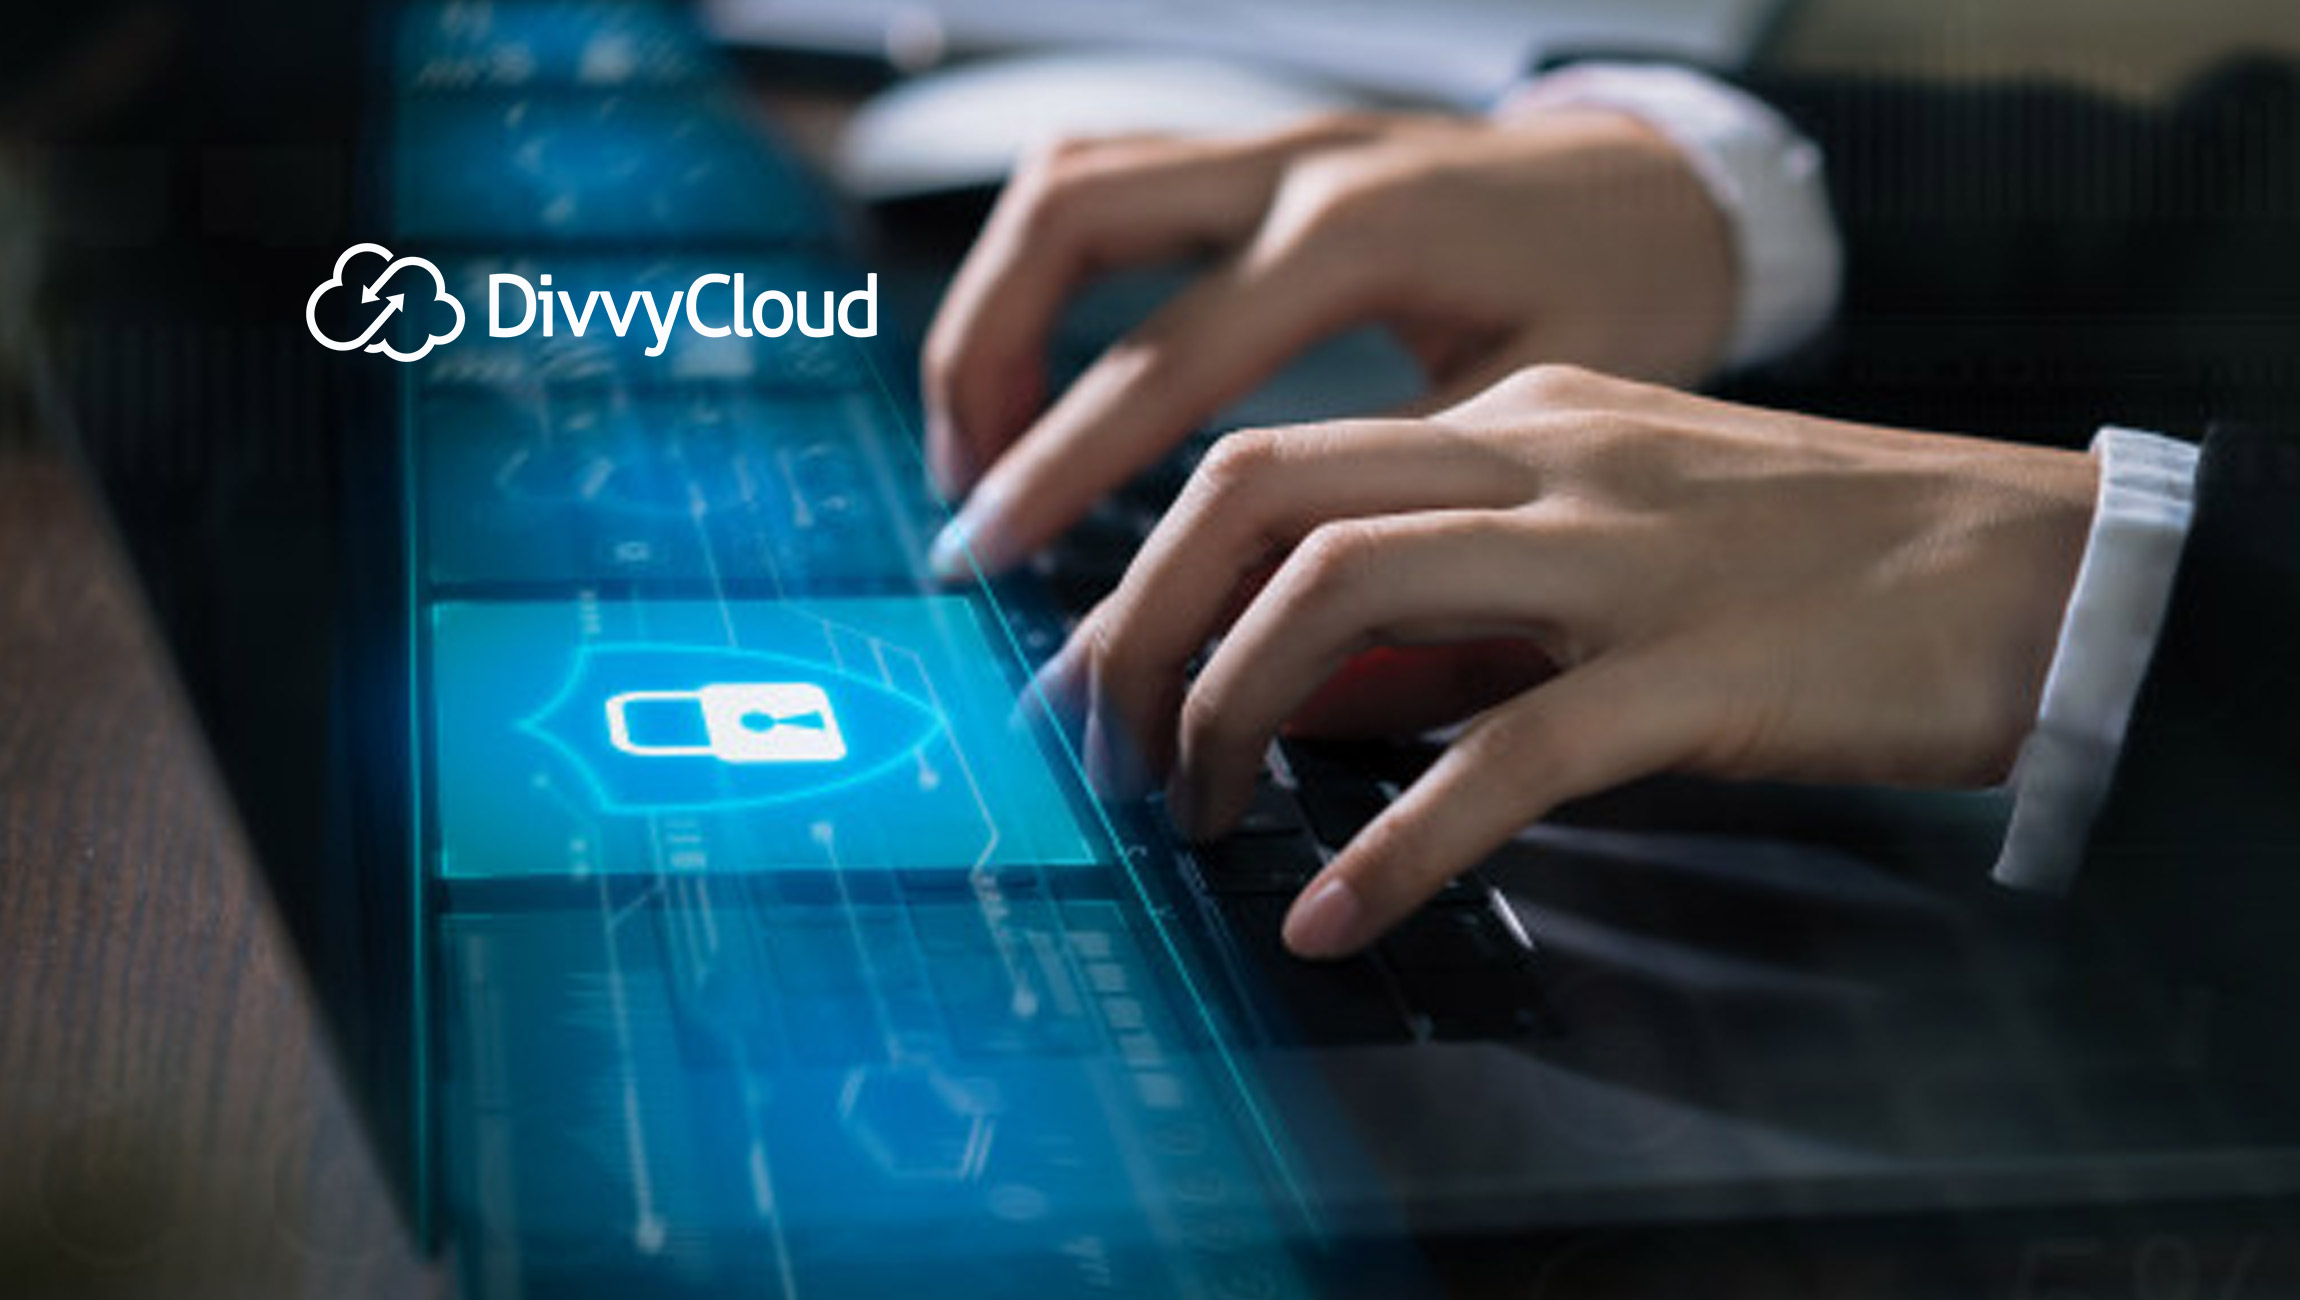 DivvyCloud Announces New Channel Partner Program to Meet Growing Demand for Automated Cloud Security and Compliance